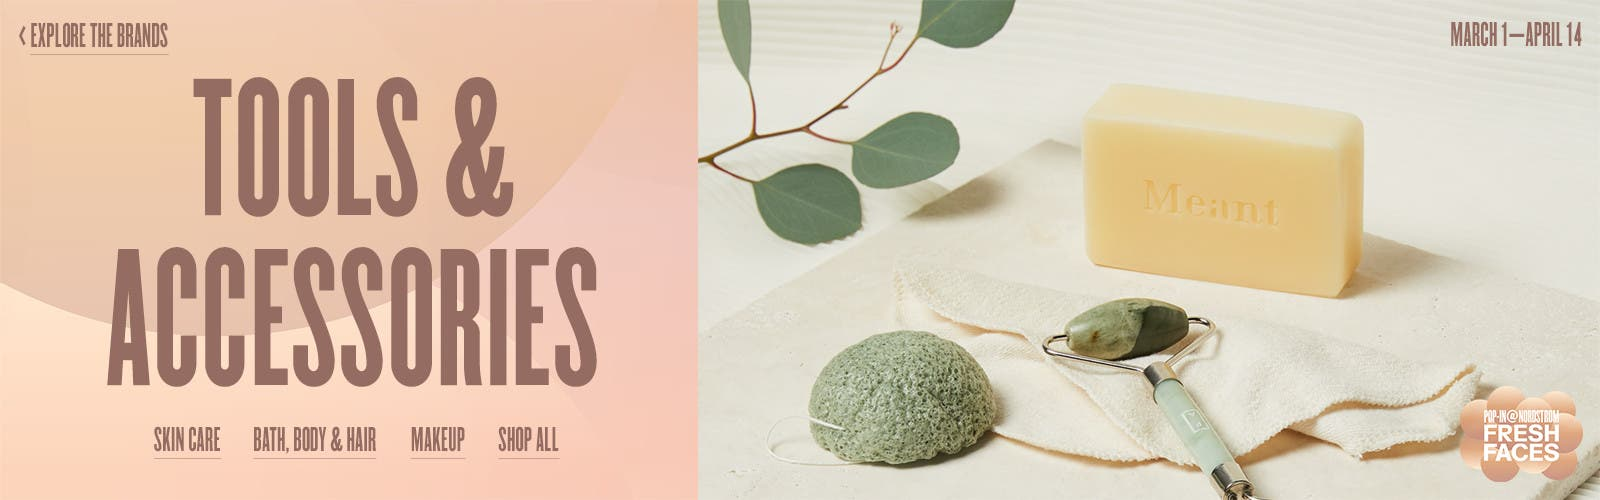 Pop-In@Nordstrom Fresh Faces. March 1 to April 14. Natural skin care.